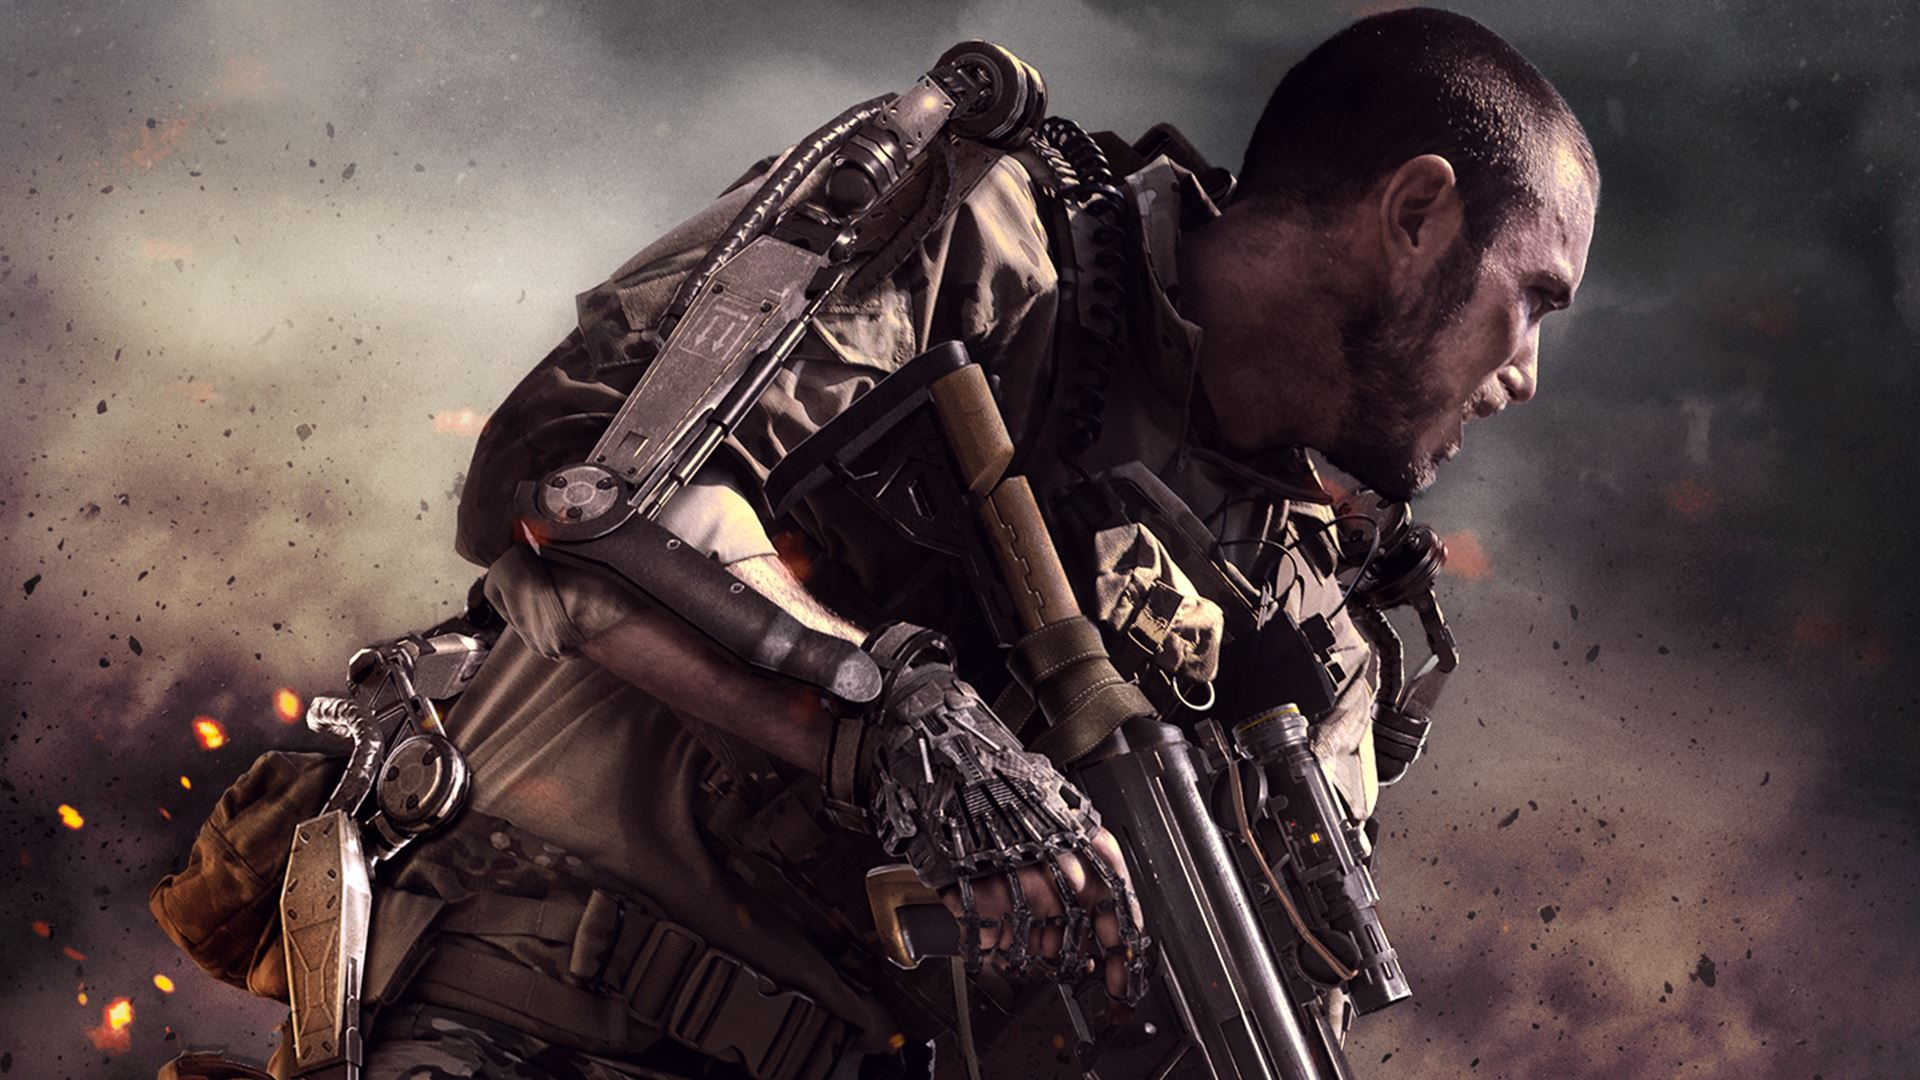 Call of Duty Advanced Warfare Wallpaper in